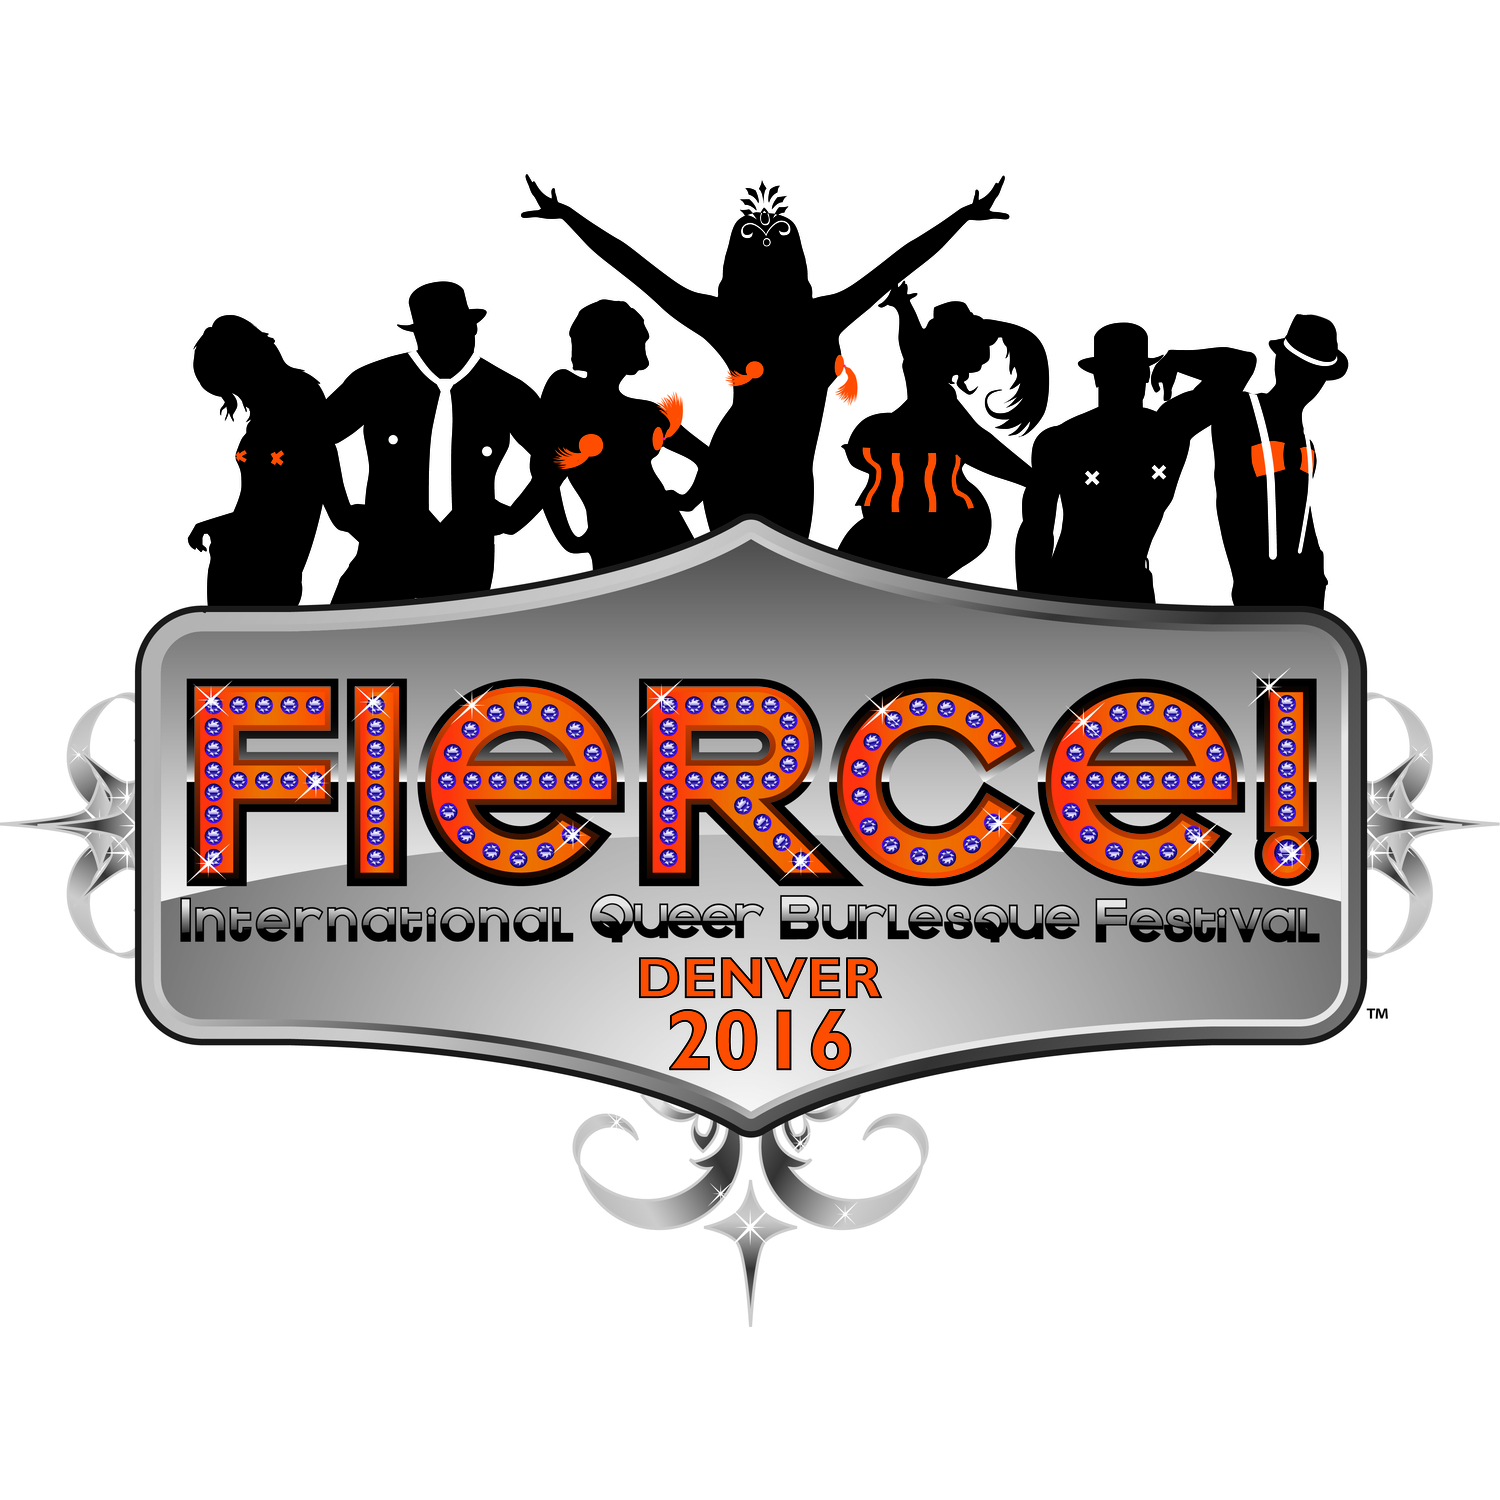 Fierce! International Queer Burlesque Festival